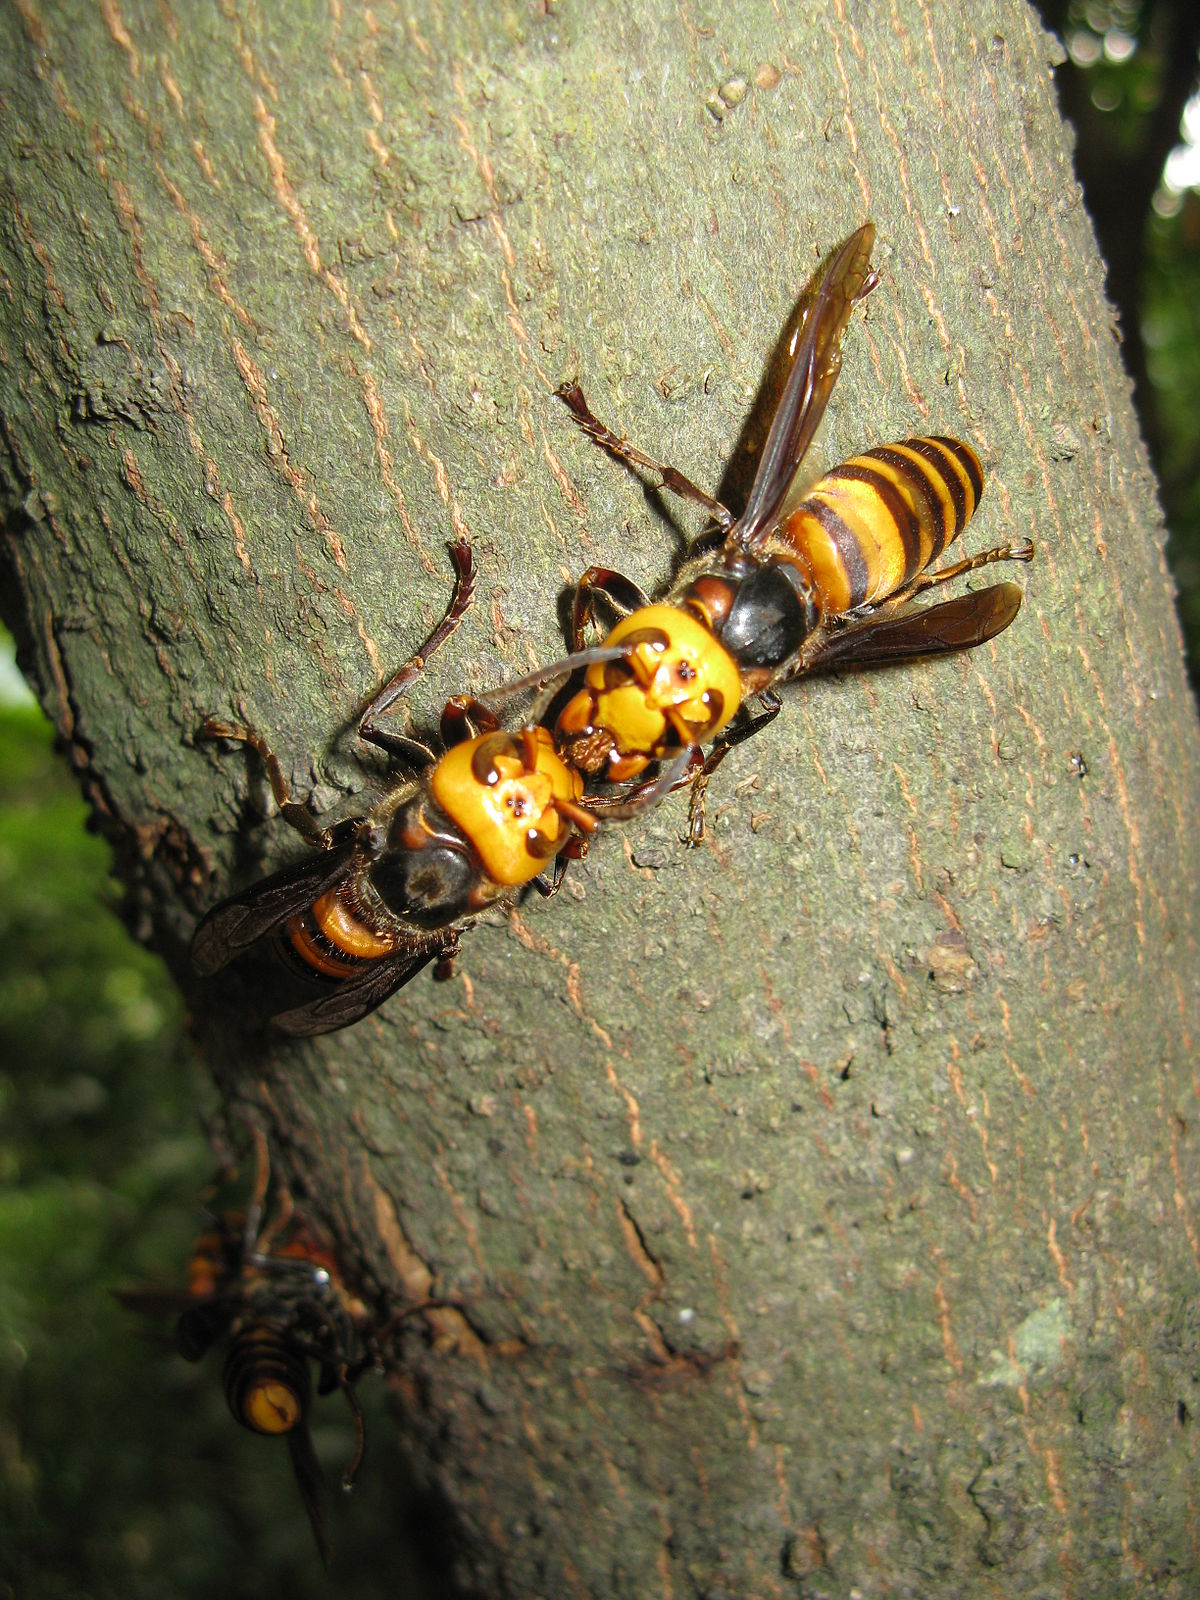 Asian giant hornet - Wikipedia